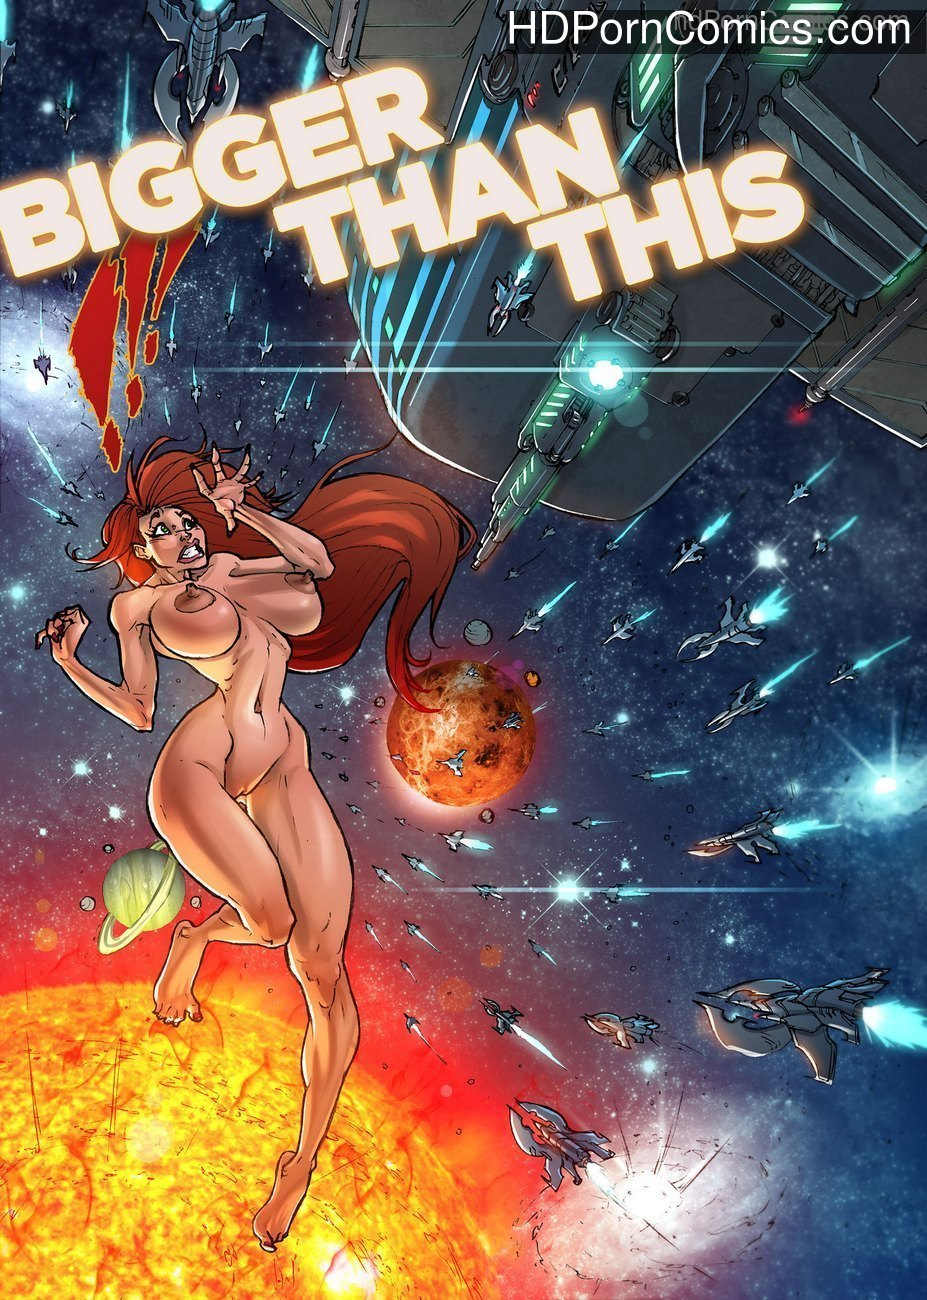 Bigger Than This 2 Sex Comic